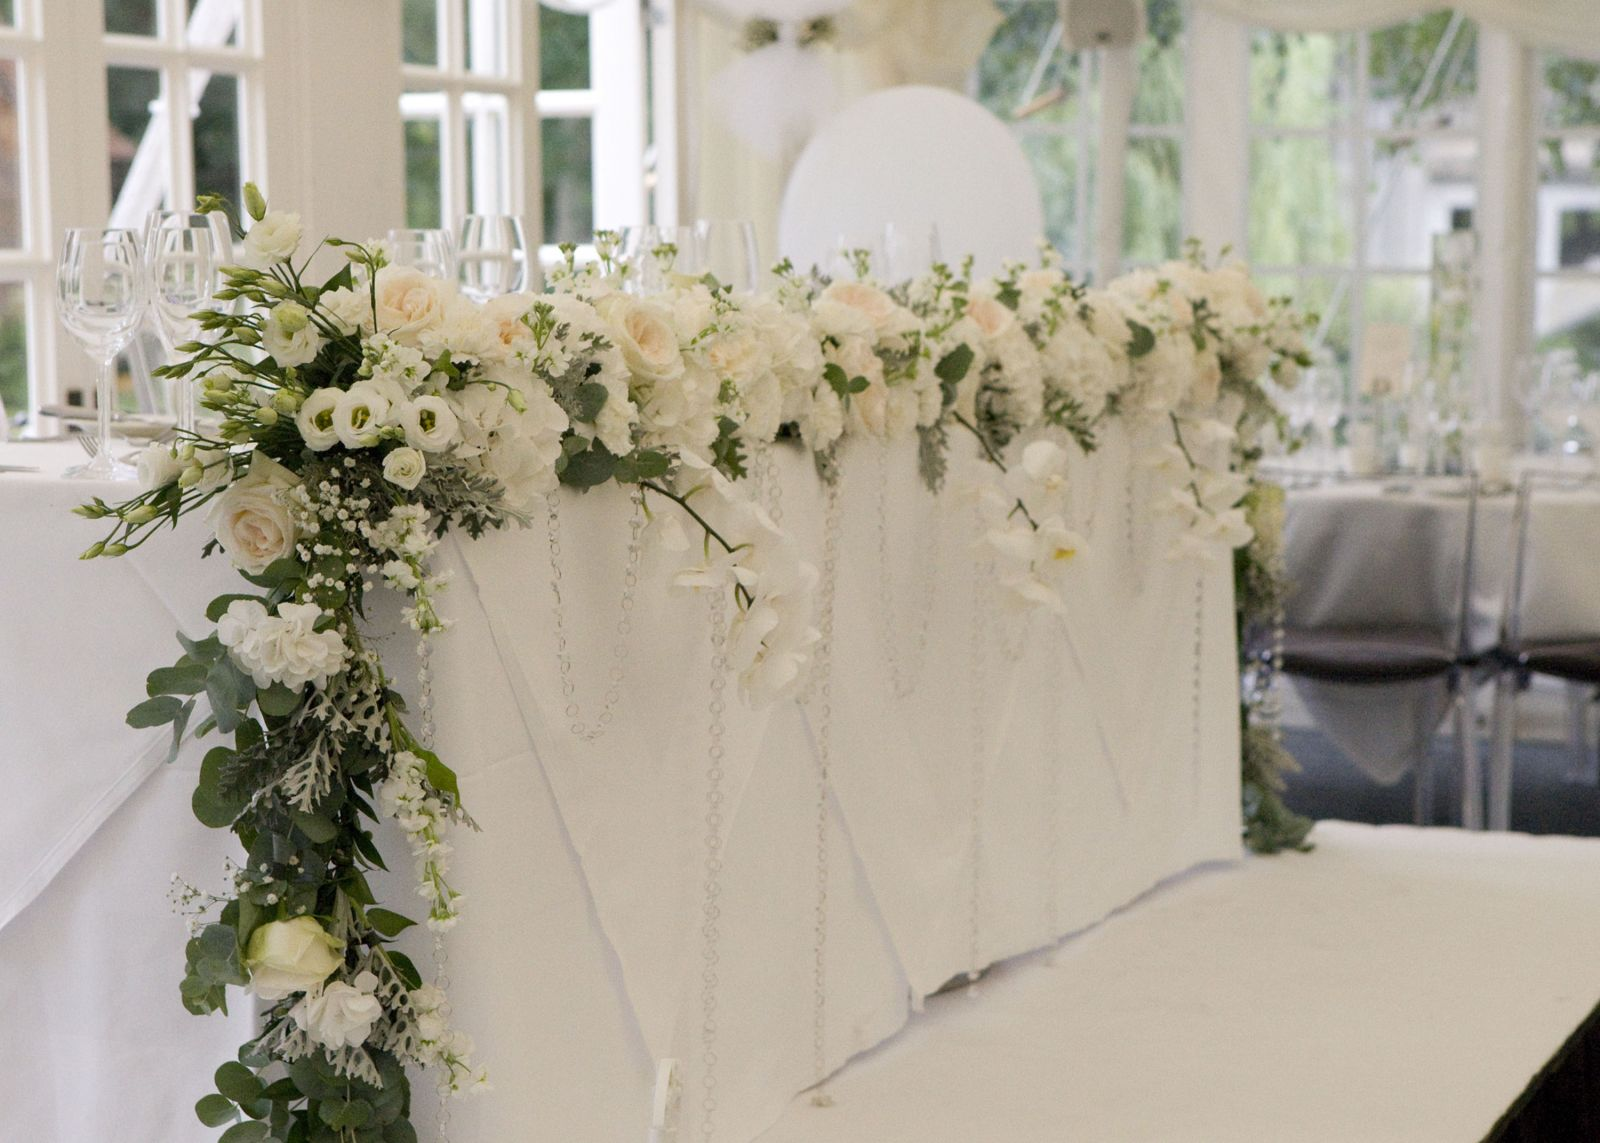 Wedding flowers how to style your top table our blog jades there are many ways of decorating the top table without relying on large displays different sized vases can look simply spectacular when used on mass mightylinksfo